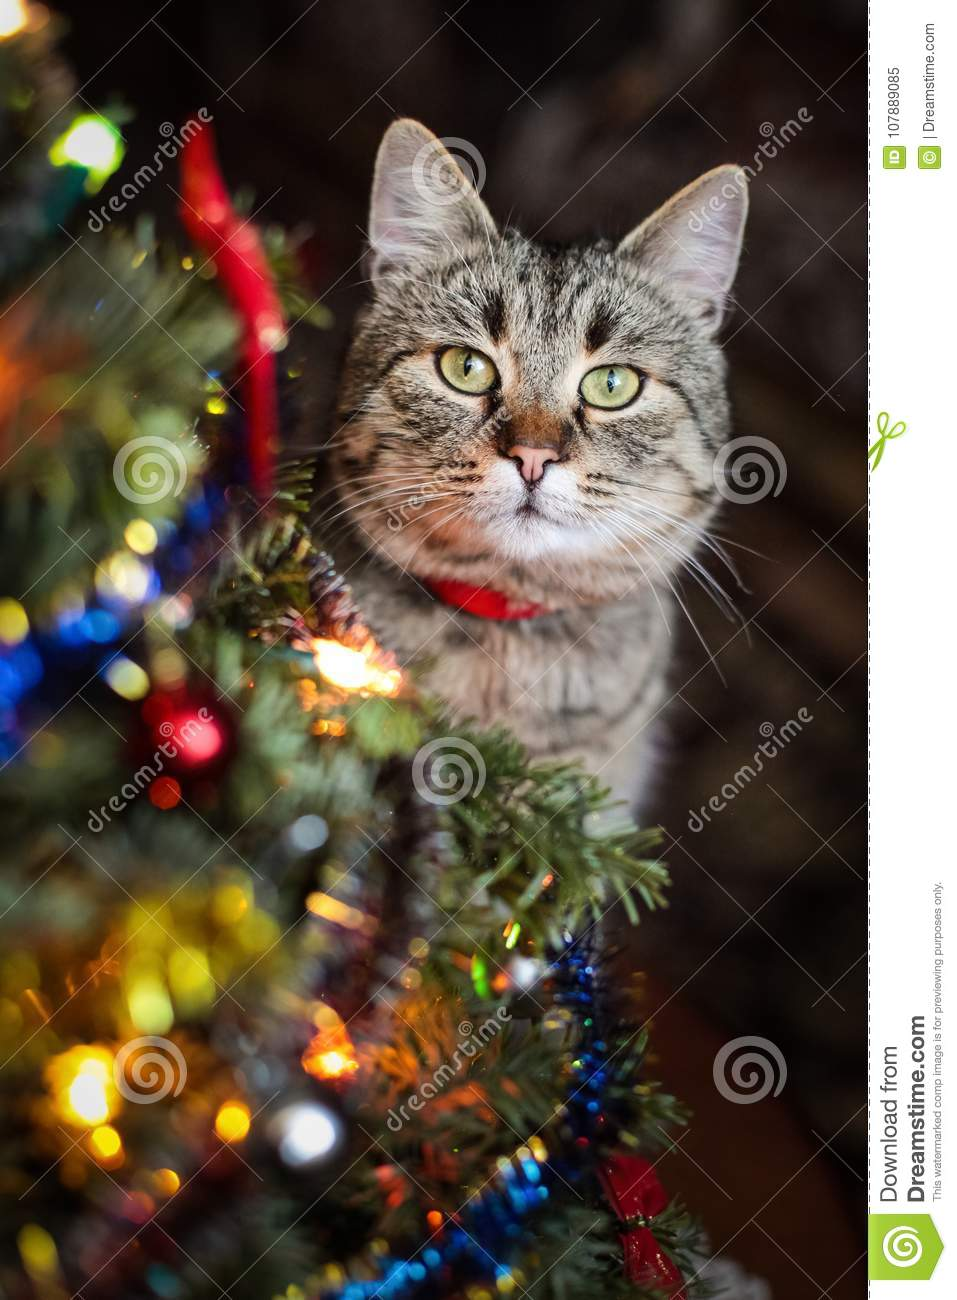 download cat with christmas presents and decorations for a christmas tree stock image image of